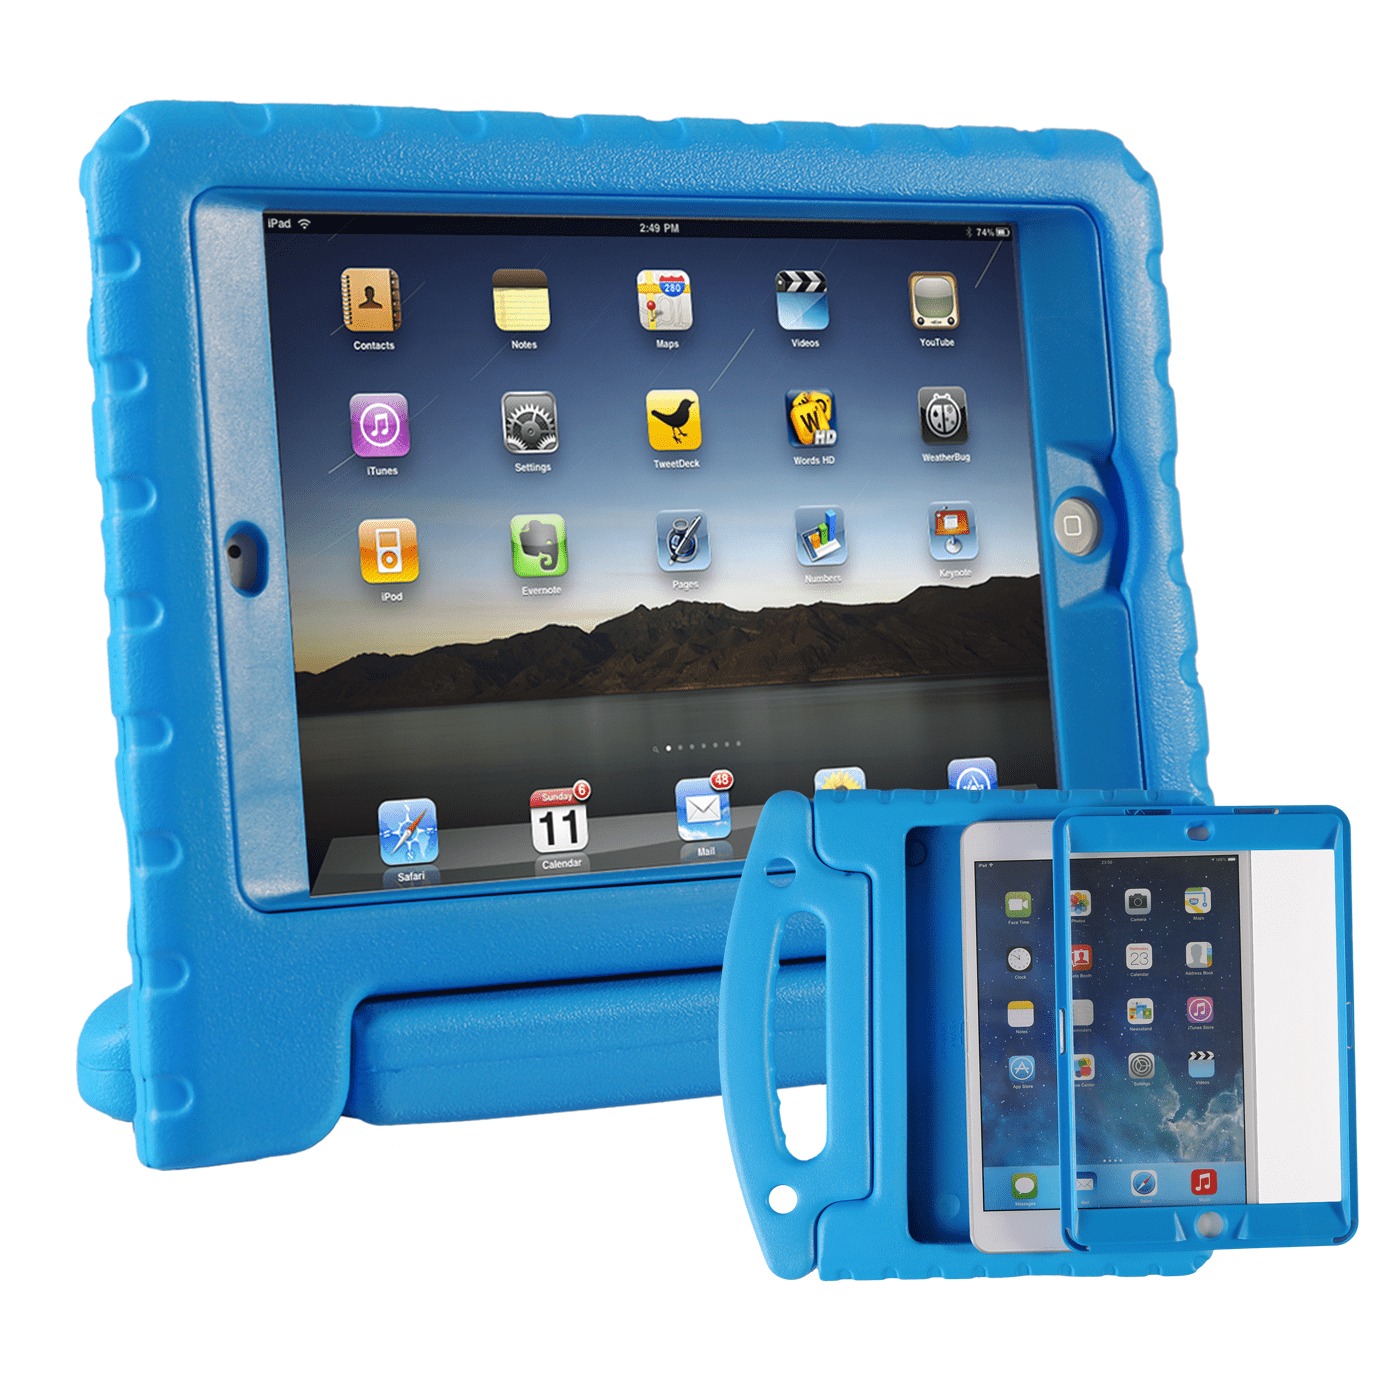 HDE iPad Mini 1 2 3 Bumper Case for Kids Shockproof Hard Cover Handle Stand with Built in Screen Protector for Apple iPad Mini 1st 2nd 3rd Generation (Blue)